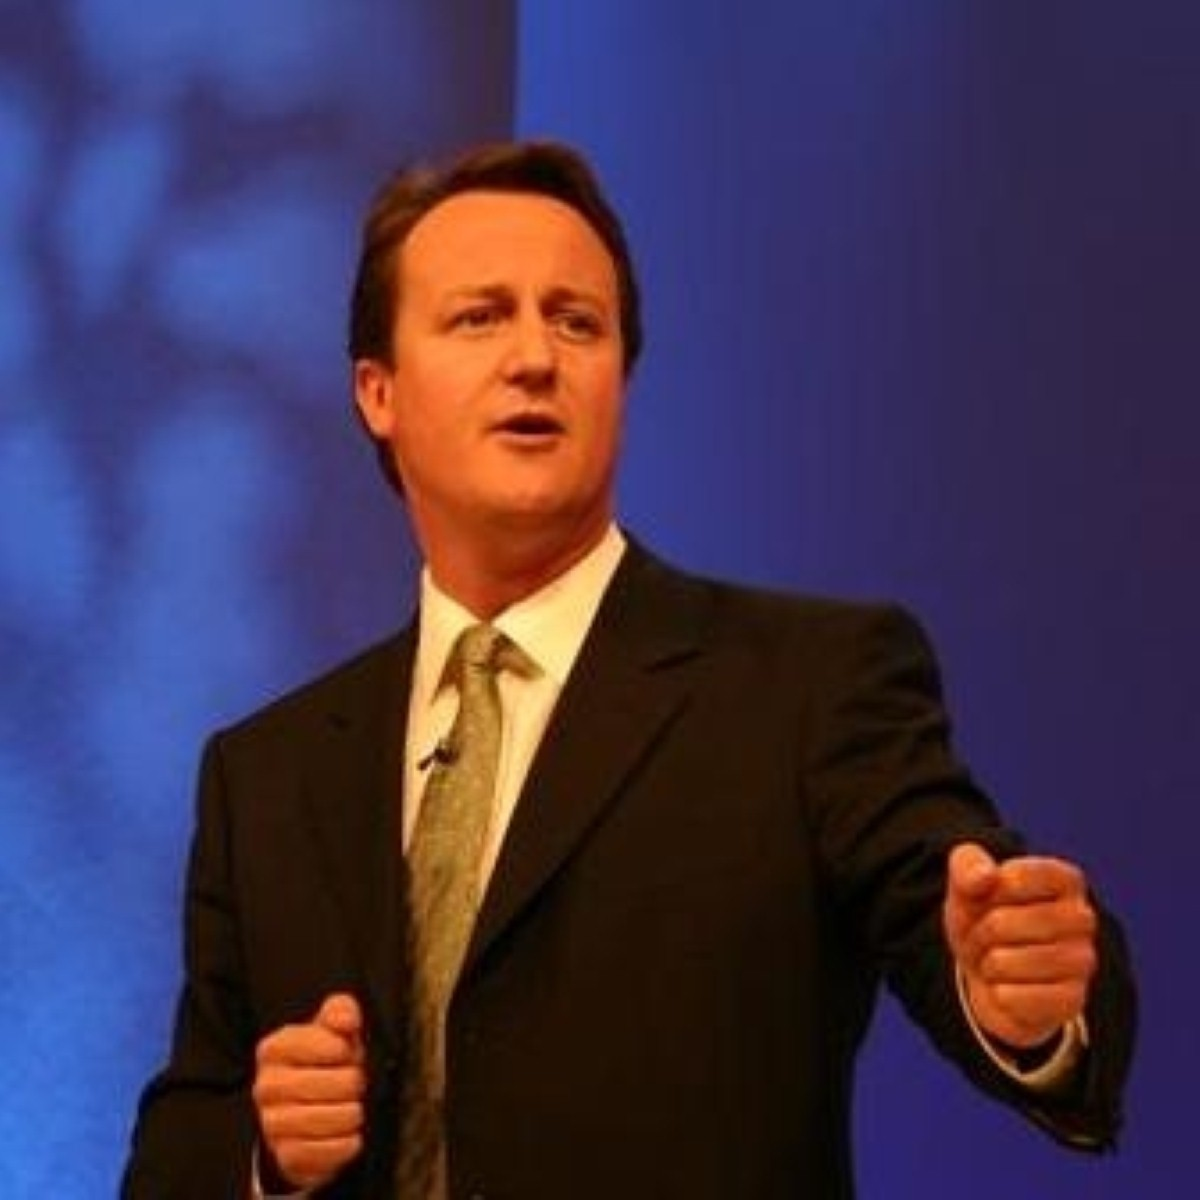 David Cameron is due to give his maiden leader's speech at tomorrow's conference